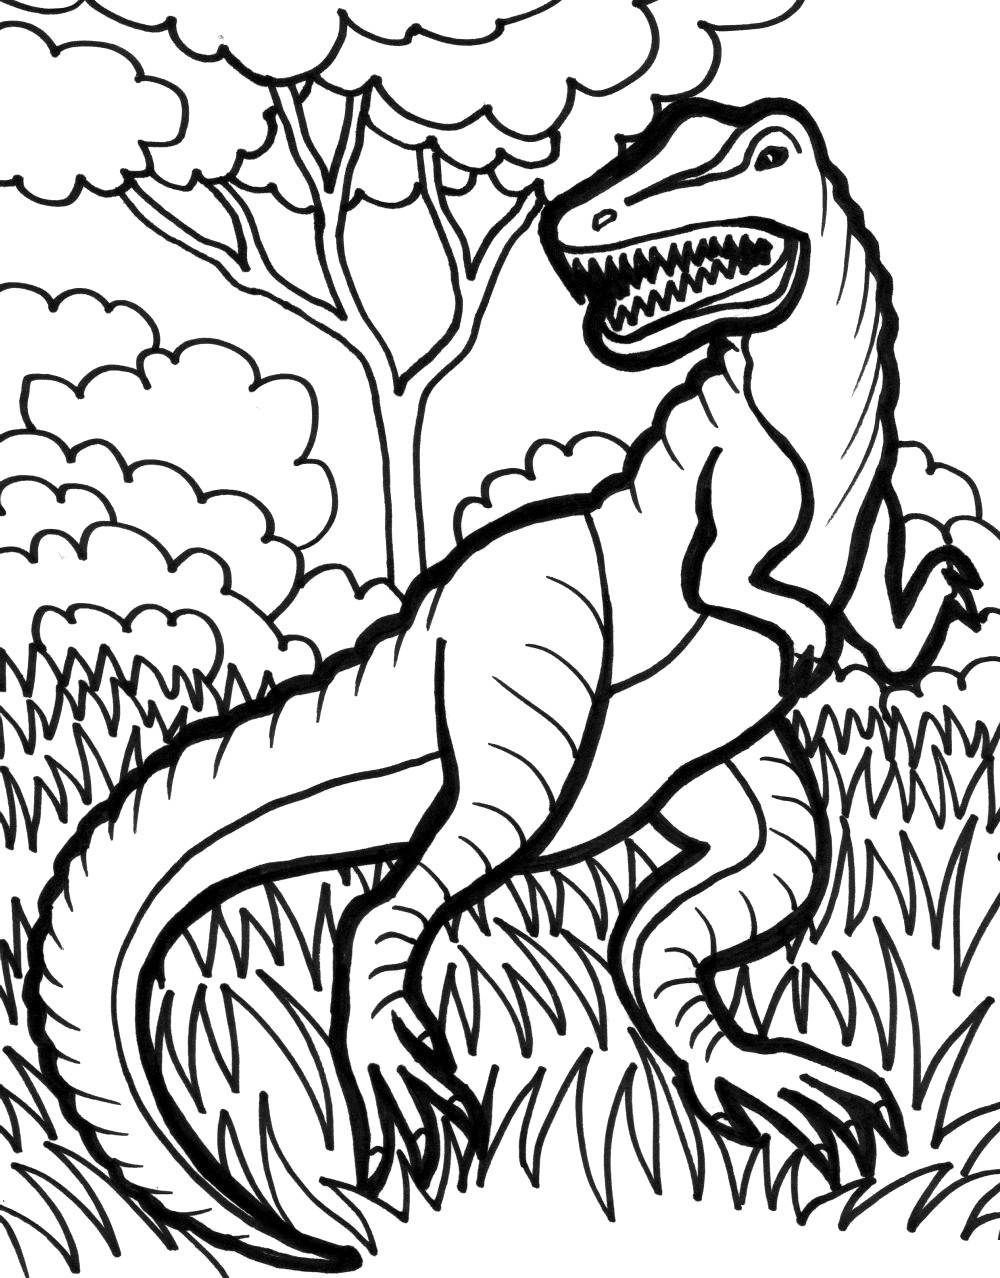 T Coloring Pages For Kids  TRex Coloring Pages Best Coloring Pages For Kids